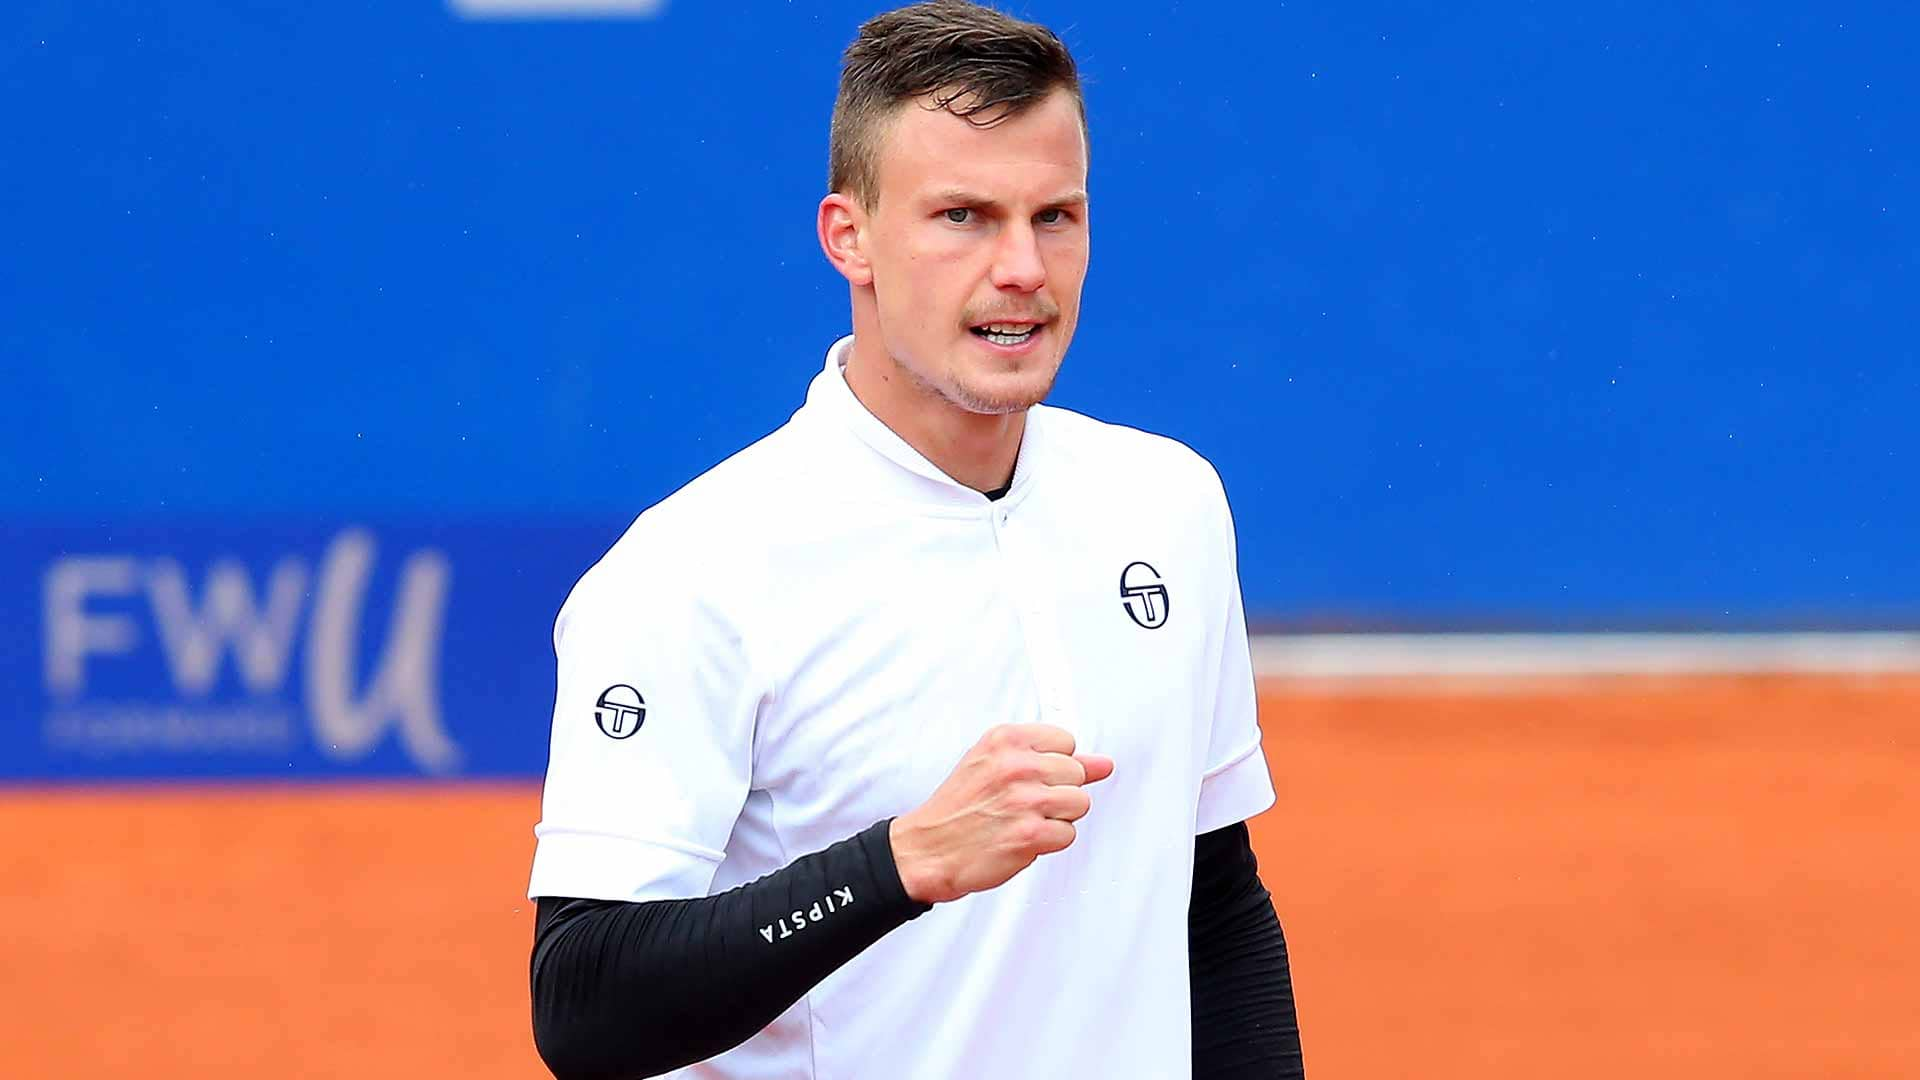 Marton Fucsovics advances on Monday in Munich